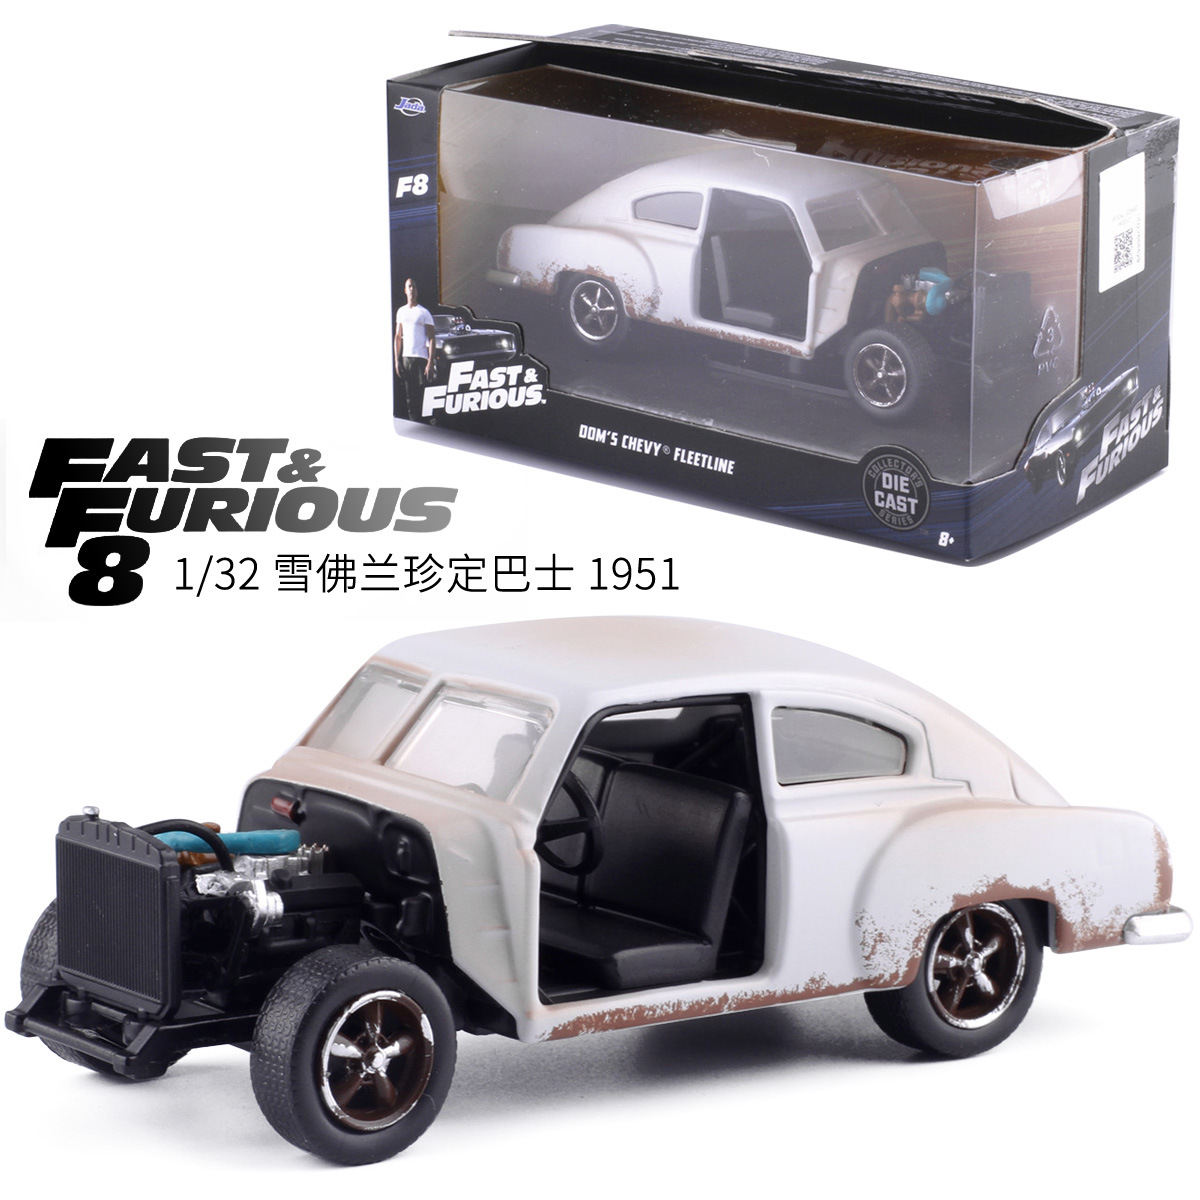 hight resolution of 1 32 jada fast furious alloy car chevy fleetline 1951 bus metal diecasts classical model toy collection toys for children gift in diecasts toy vehicles